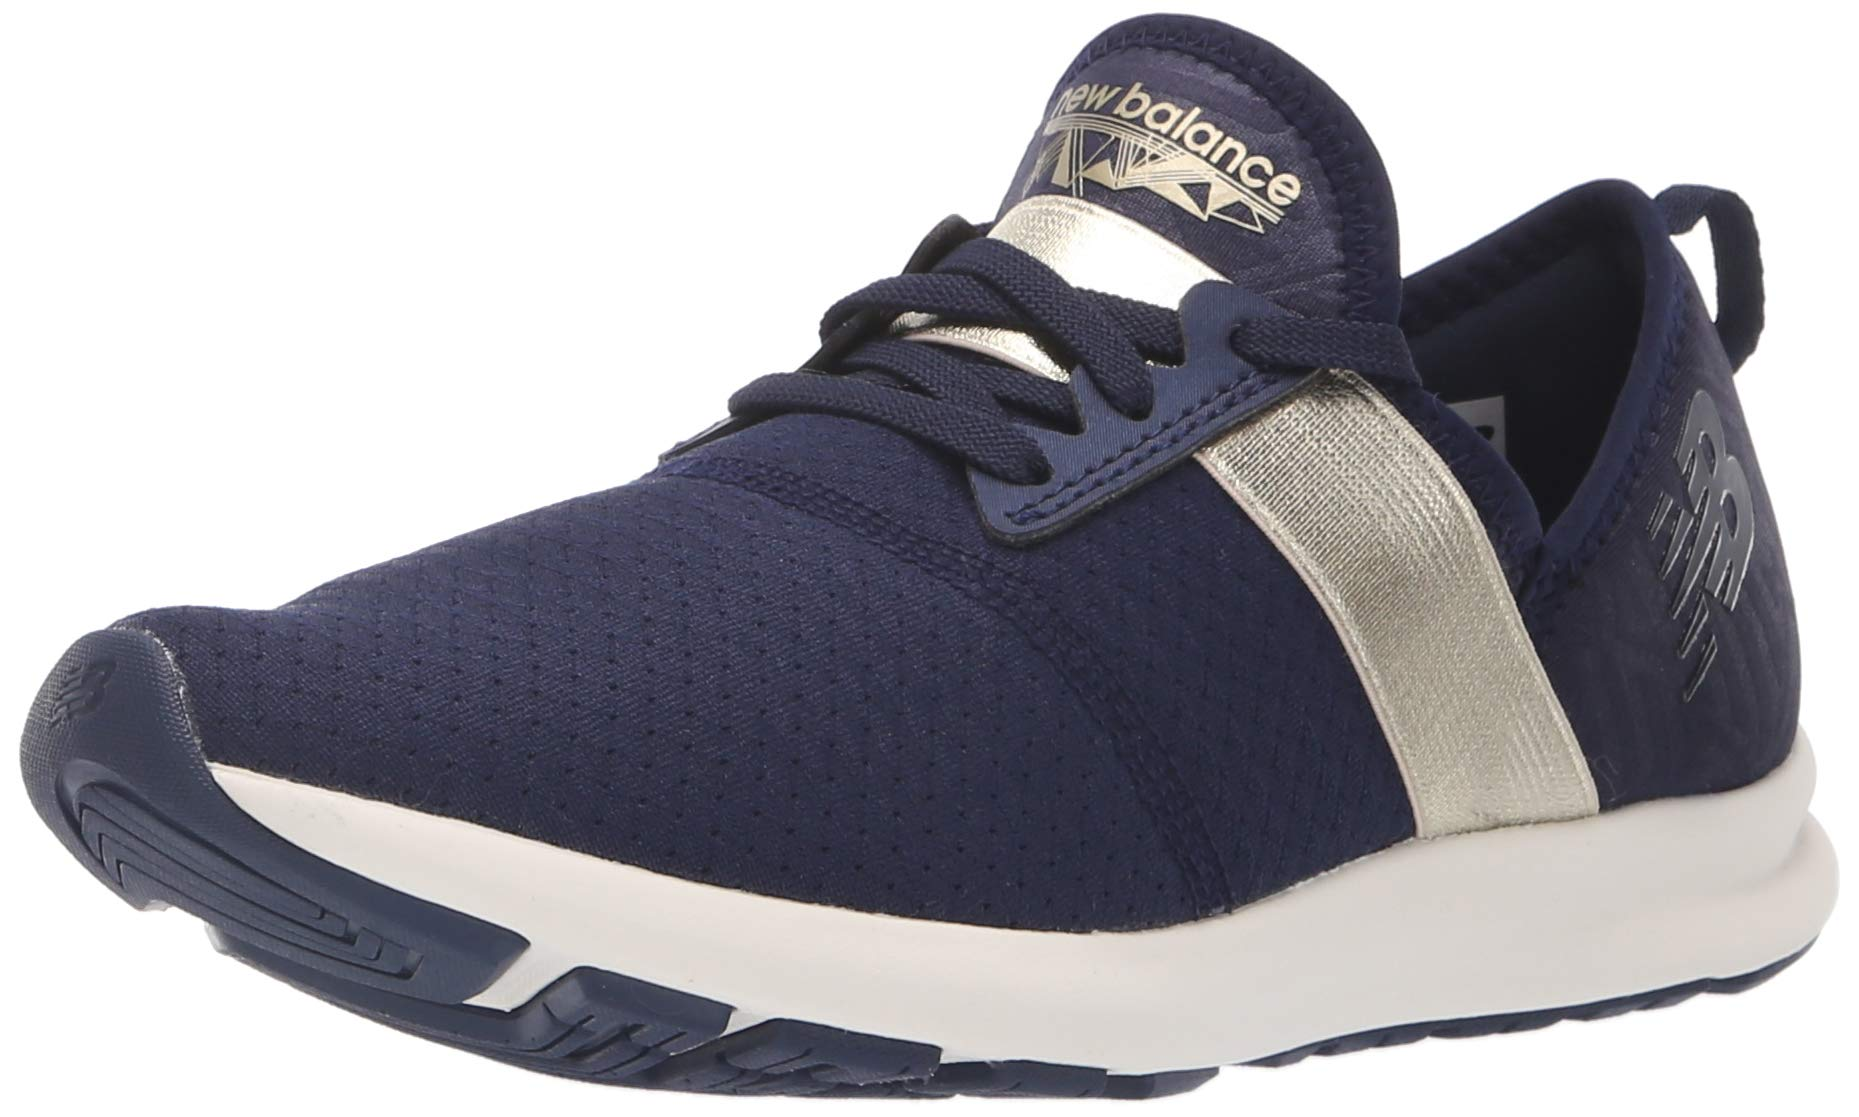 New Balance Women's Nergize V1 FuelCore Sneaker,PIGMENT,8.5 D US